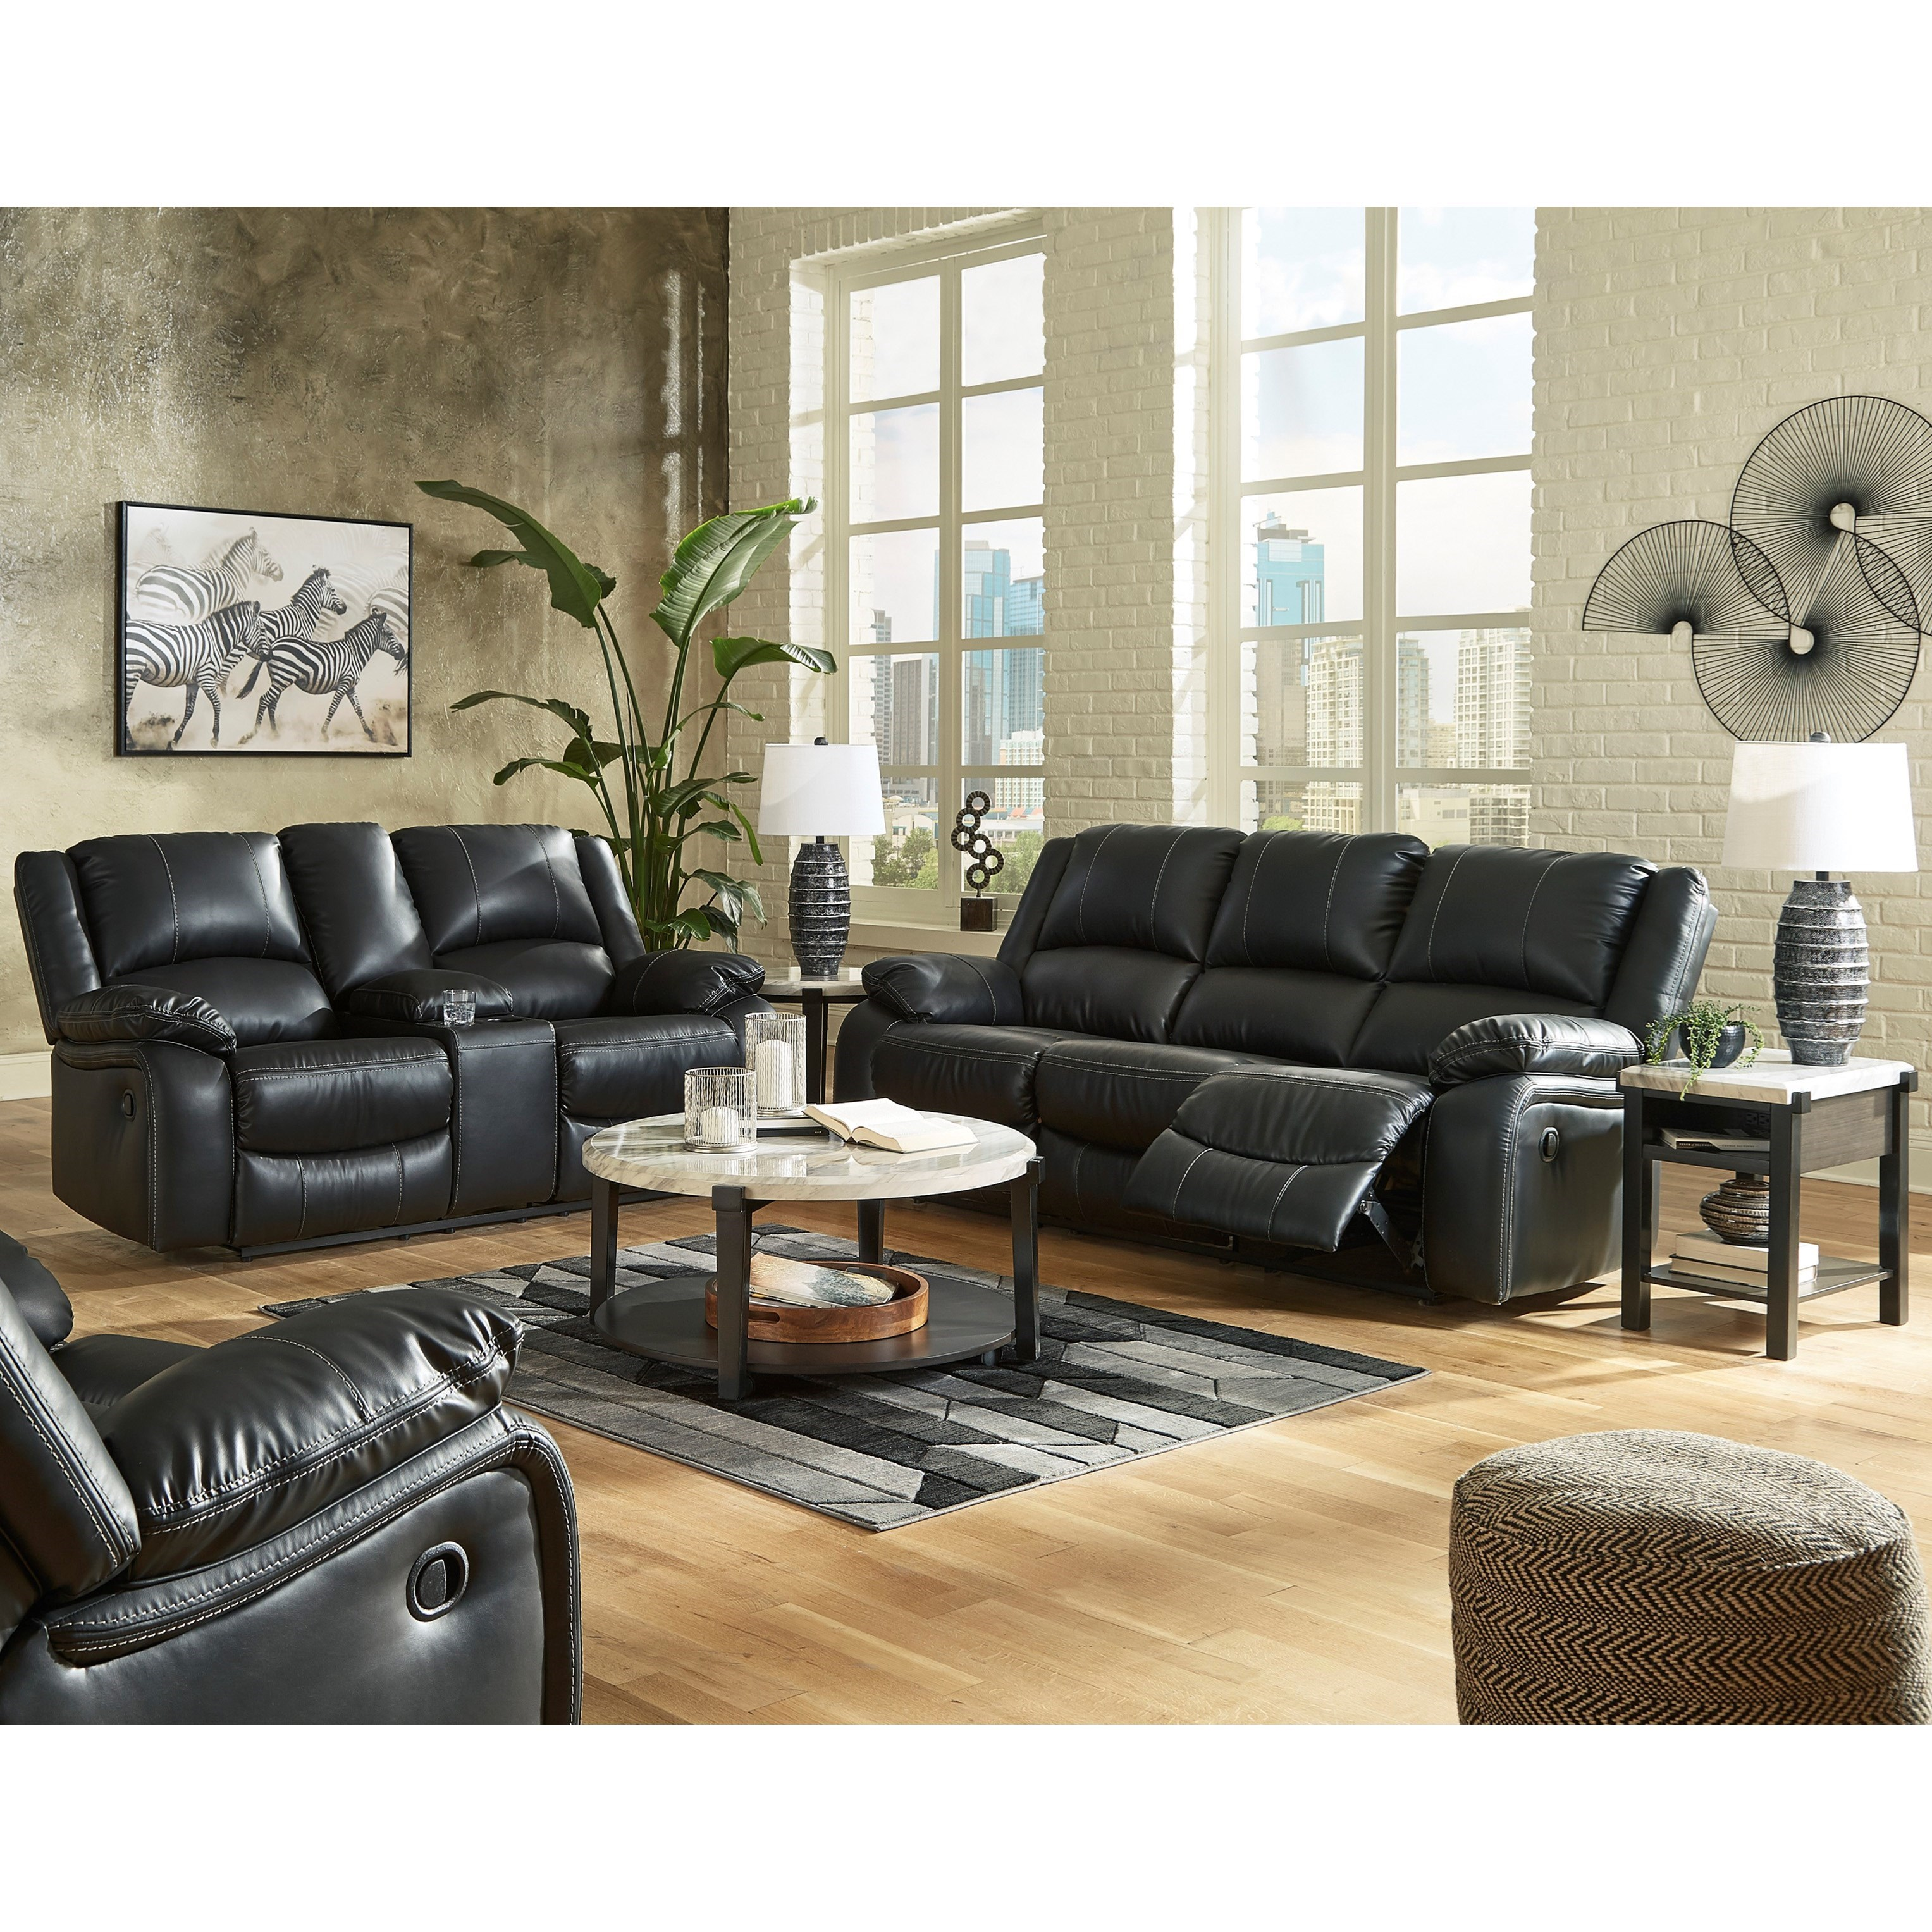 Calderwell Reclining Living Room Group by Signature Design by Ashley at Northeast Factory Direct